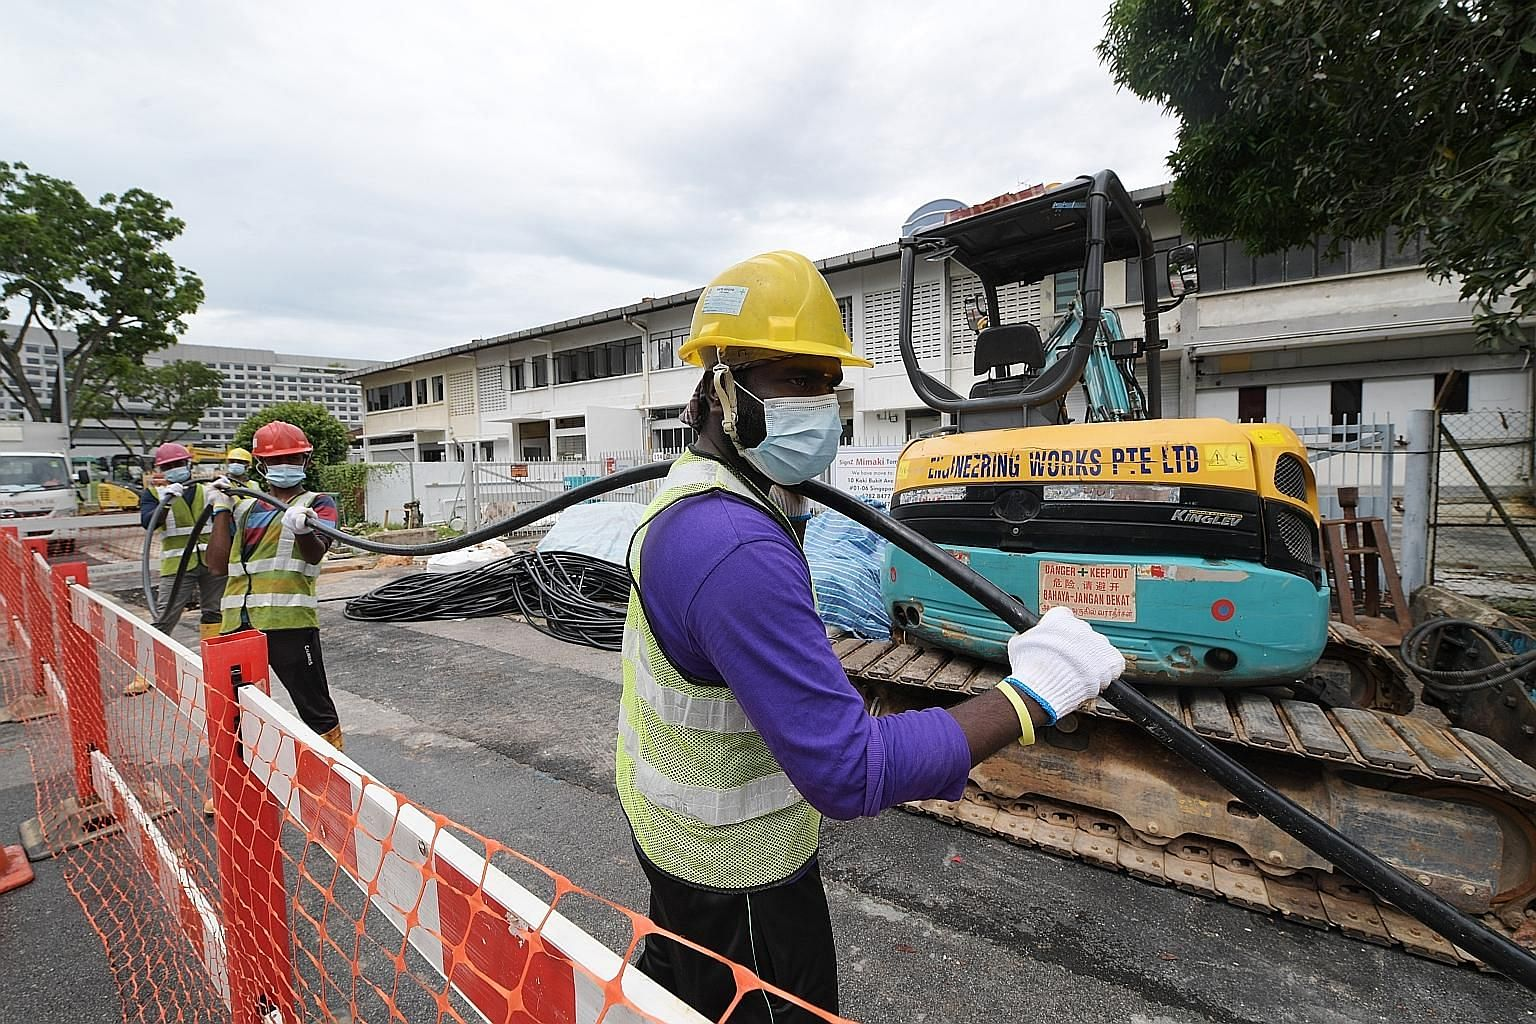 Workers from SP Group doing cabling work on May 13 to prepare a building in Genting Lane to house quarantined Covid-19 patients.